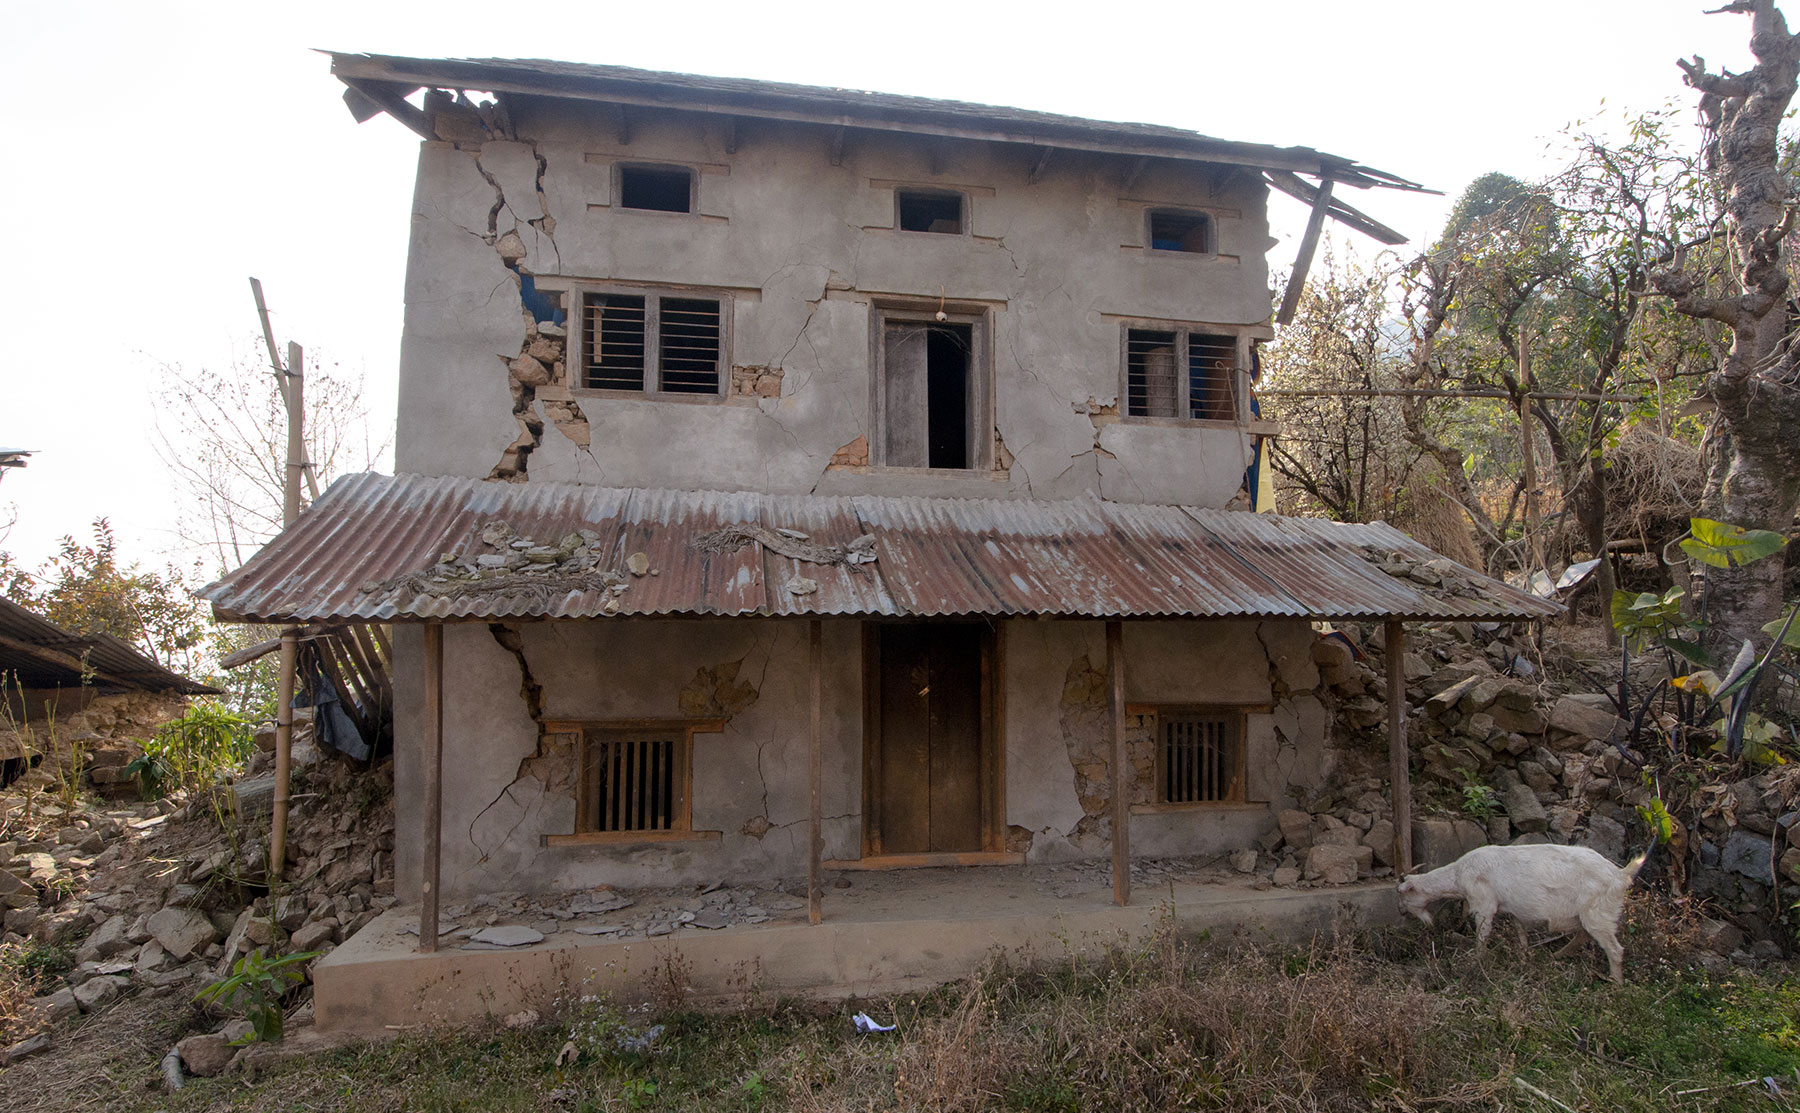 Abandoned house in Amppipal